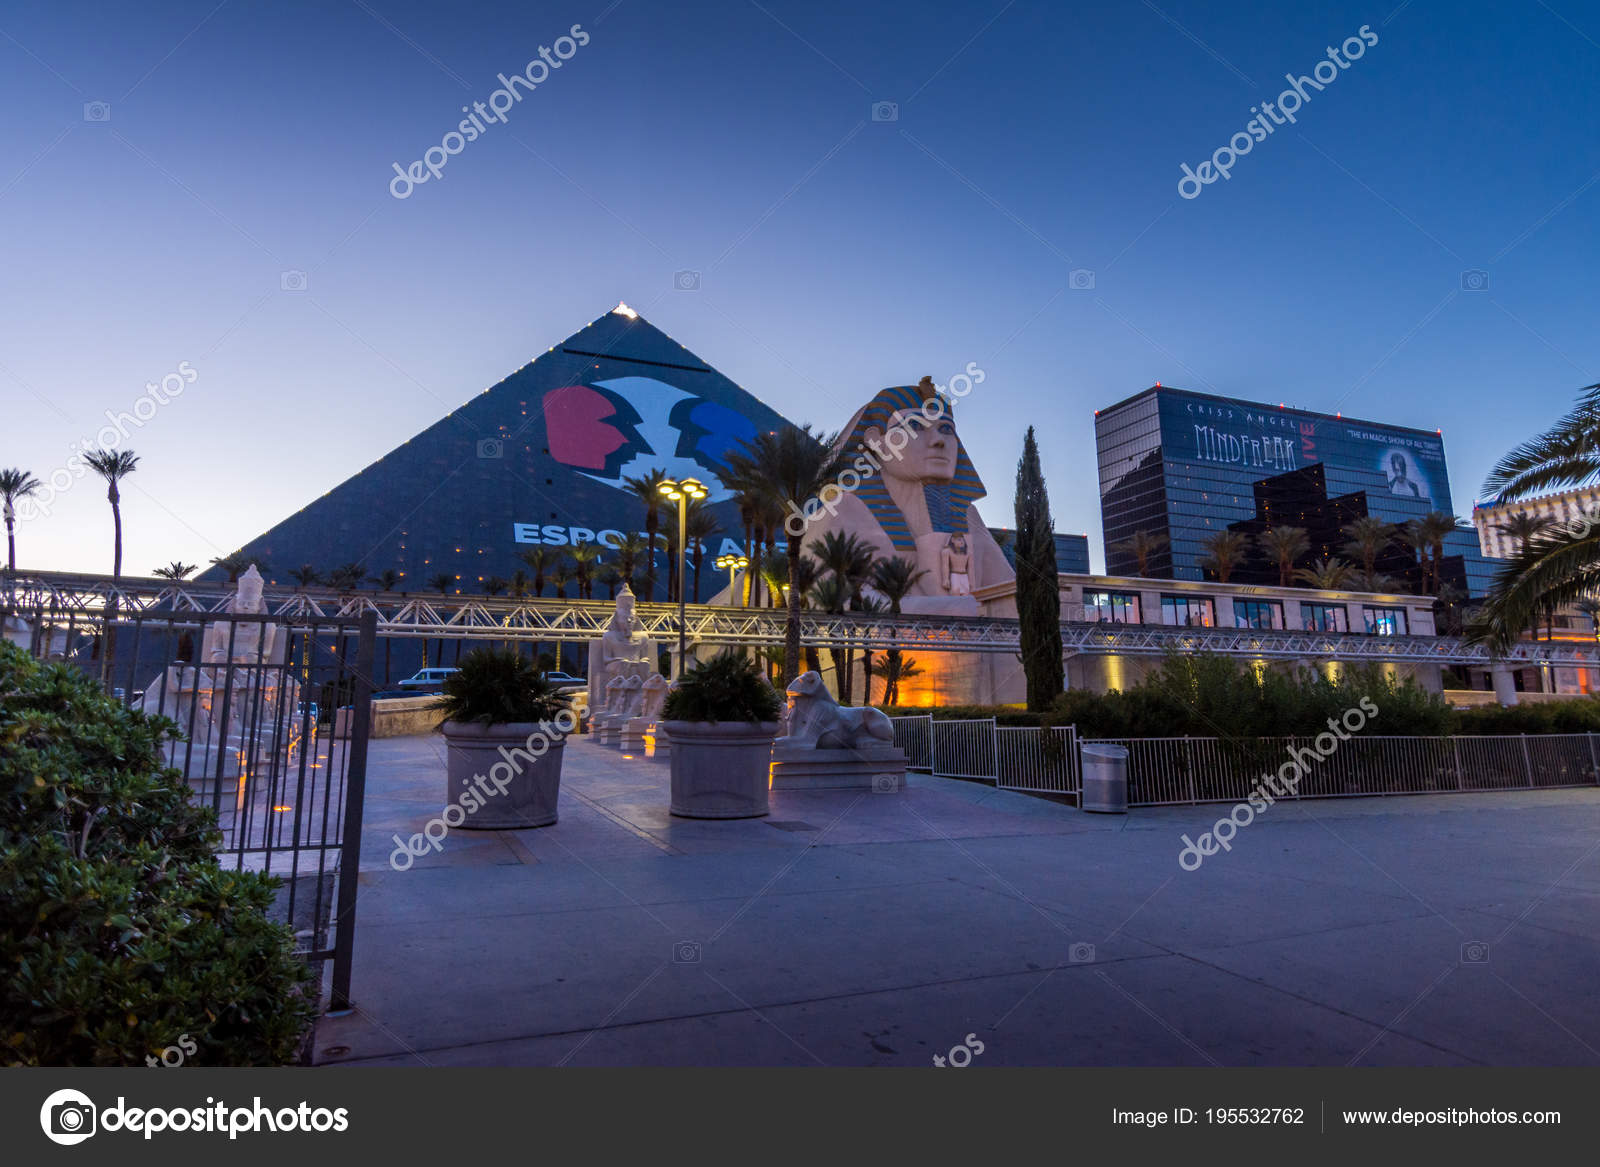 Las Vegas Us April 28 2018 The Famous Luxor Pyramid Hotel In